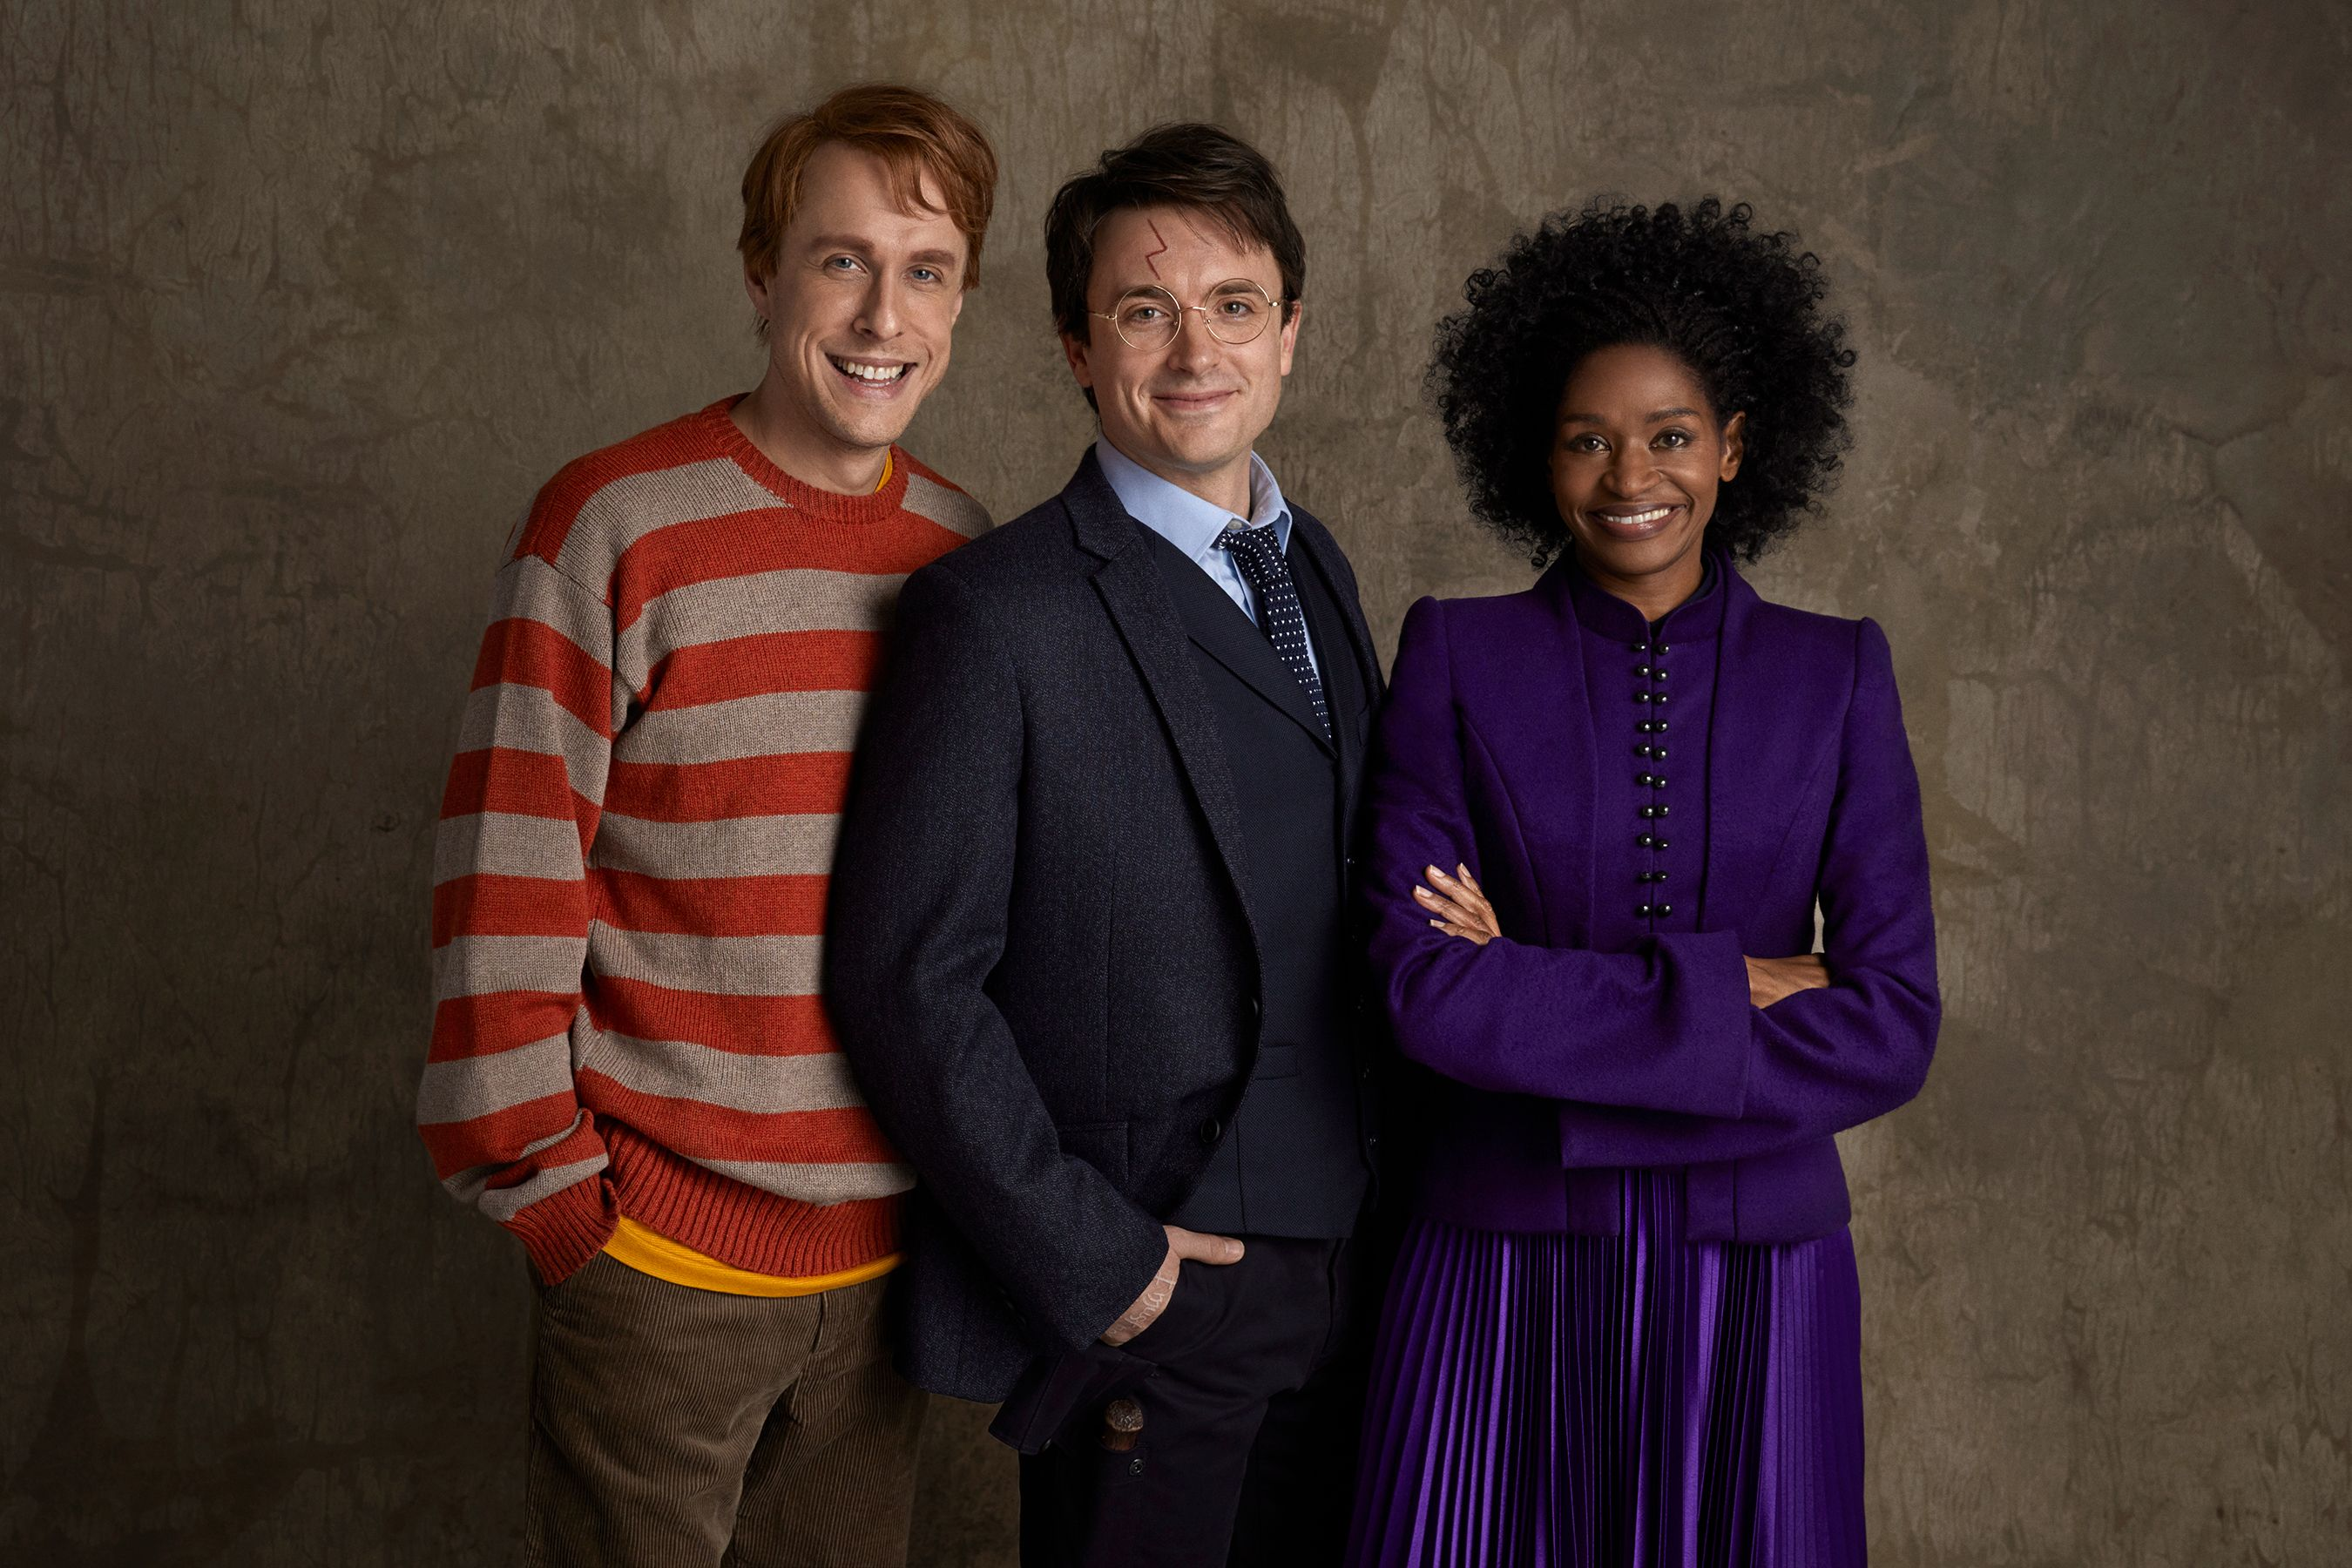 See The New Harry Ron And Hermione Joining Broadway S Harry Potter And The Cursed Child Cursed Child Harry Potter Cursed Child Cursed Child Cast